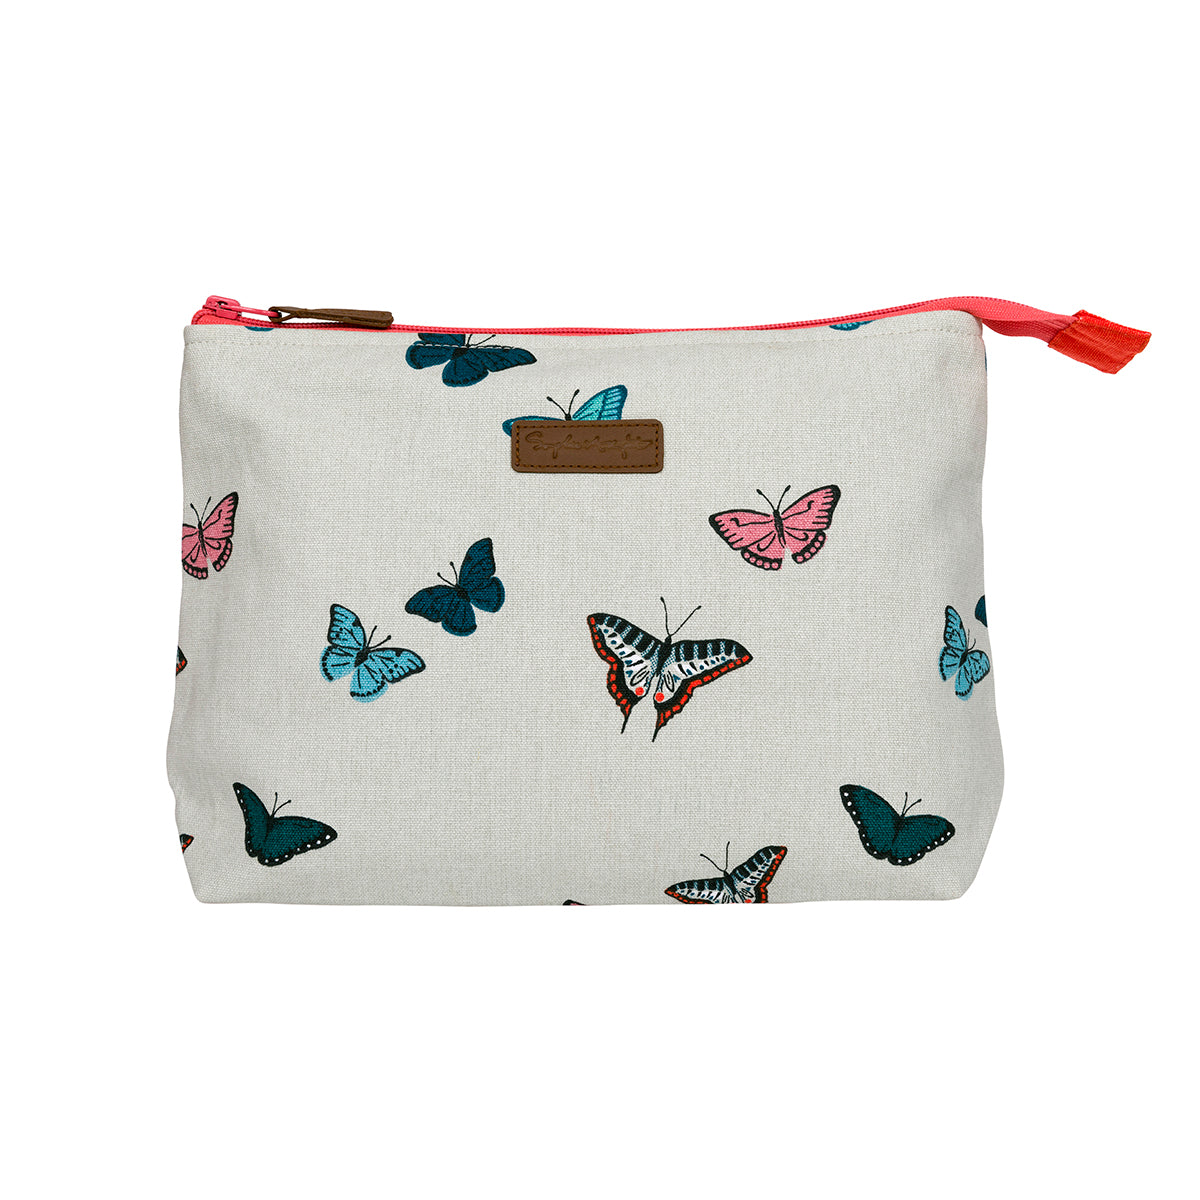 Sophie Allport Butterflies Wash Bag covered in colourful butterflies on a neutral background.